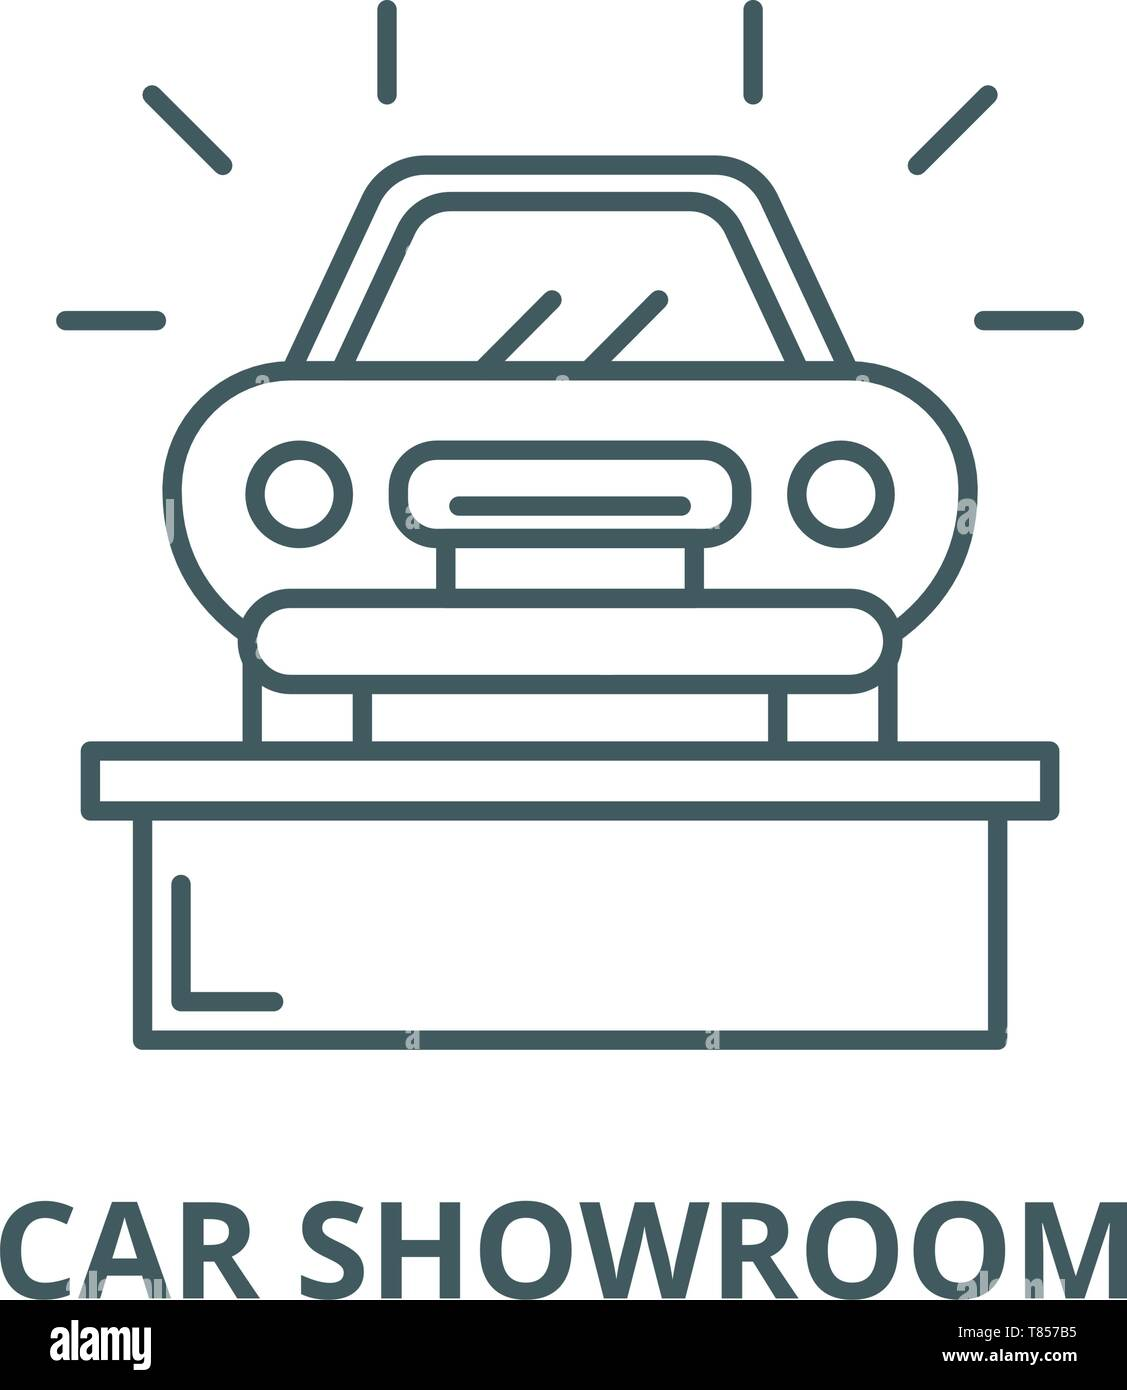 Fine Car Showroom Vector Line Icon Linear Concept Outline Sign Download Free Architecture Designs Scobabritishbridgeorg